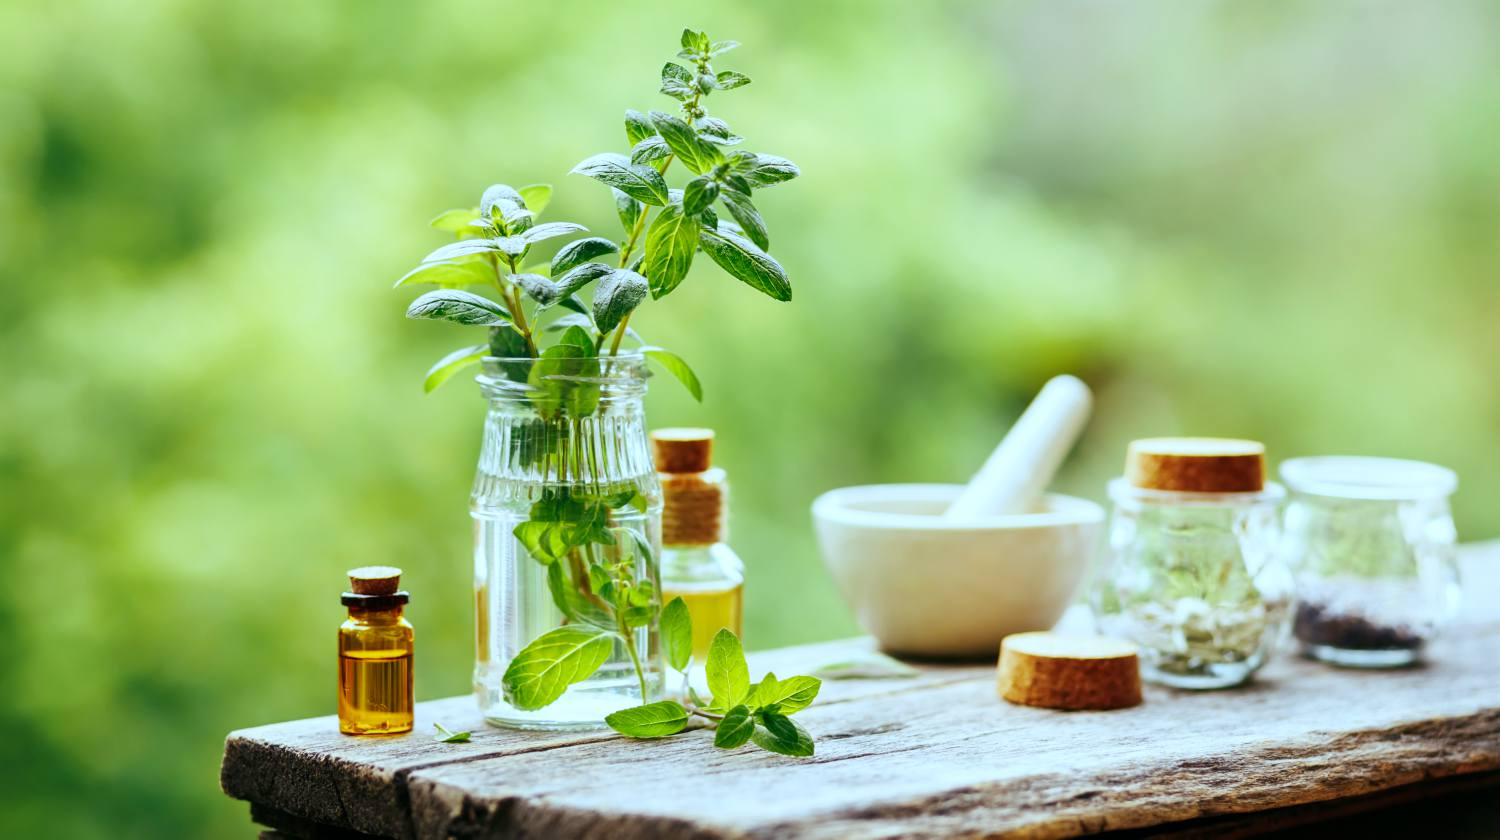 Feature | Essential Oil Peppermint Bottle on wooden table | Survival Uses For Peppermint Oil